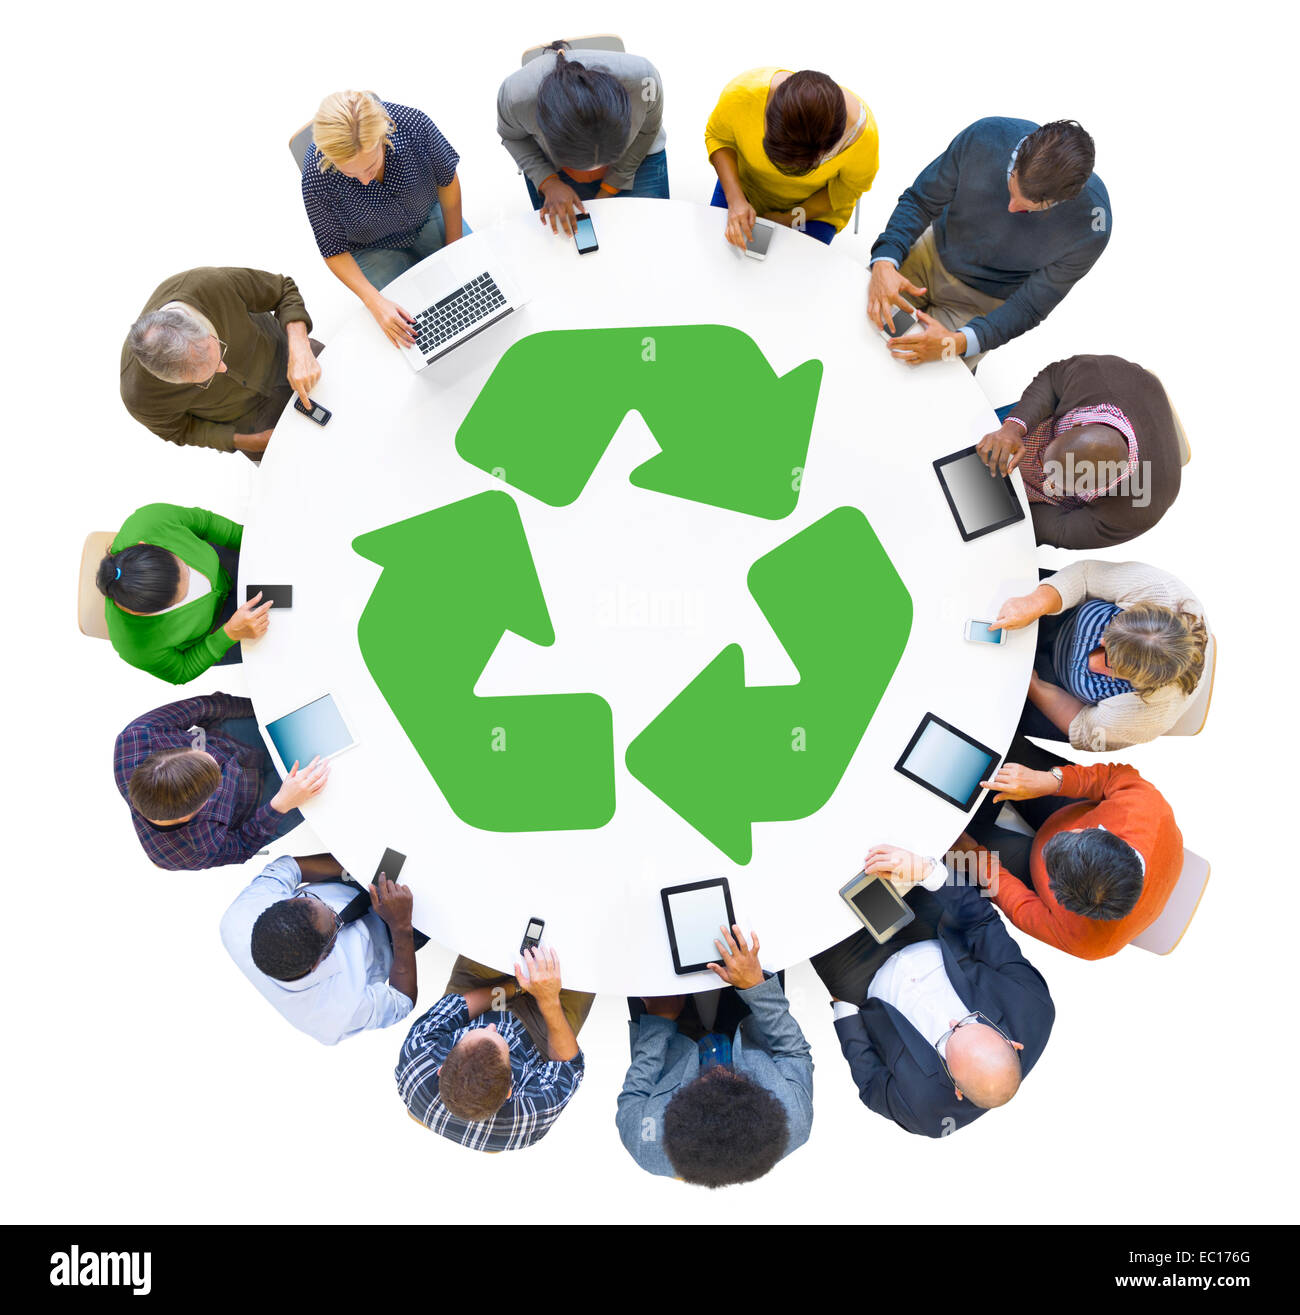 Multiethnic People Using Digital Devices with Recycle Symbol - Stock Image